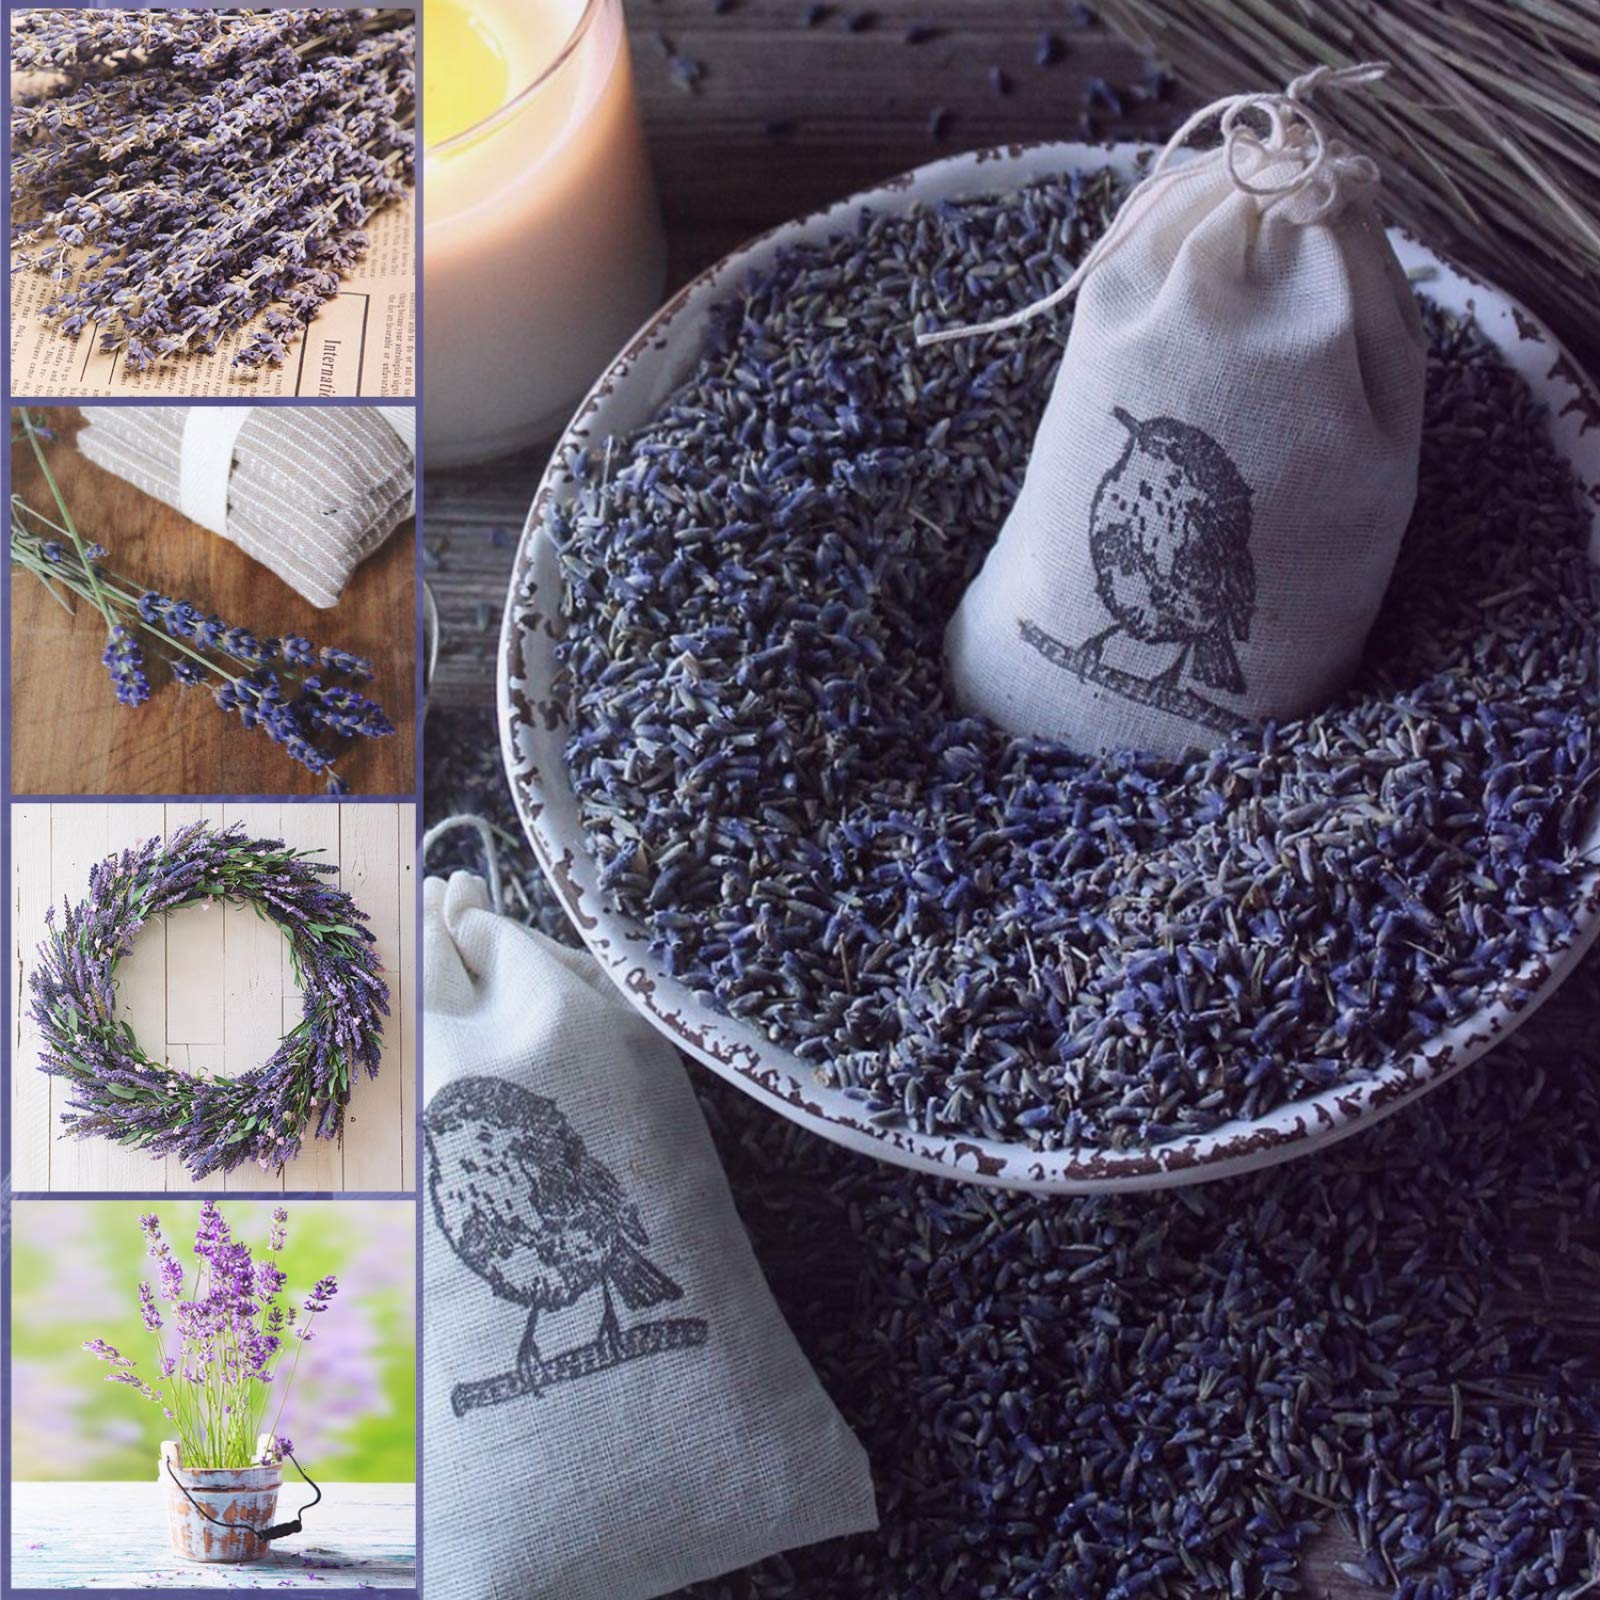 Timoo Dried Lavender Bundles 100% Natural DriedLavenderFlowers for Home Decoration, Photo Props, Home Fragrance, 2 Bundles Pack by Timoo (Image #5)